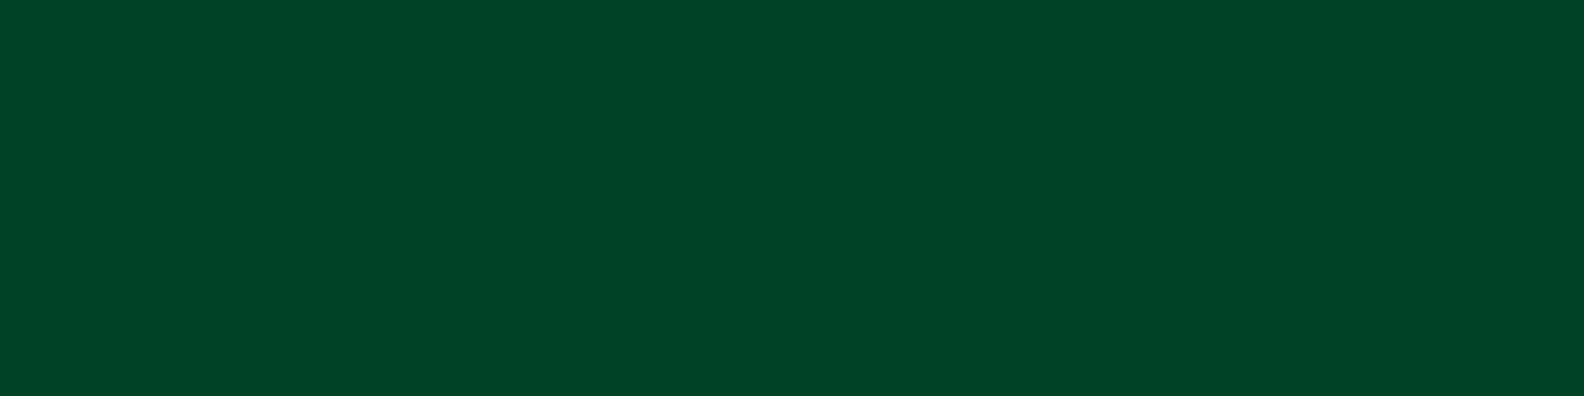 1584x396 British Racing Green Solid Color Background